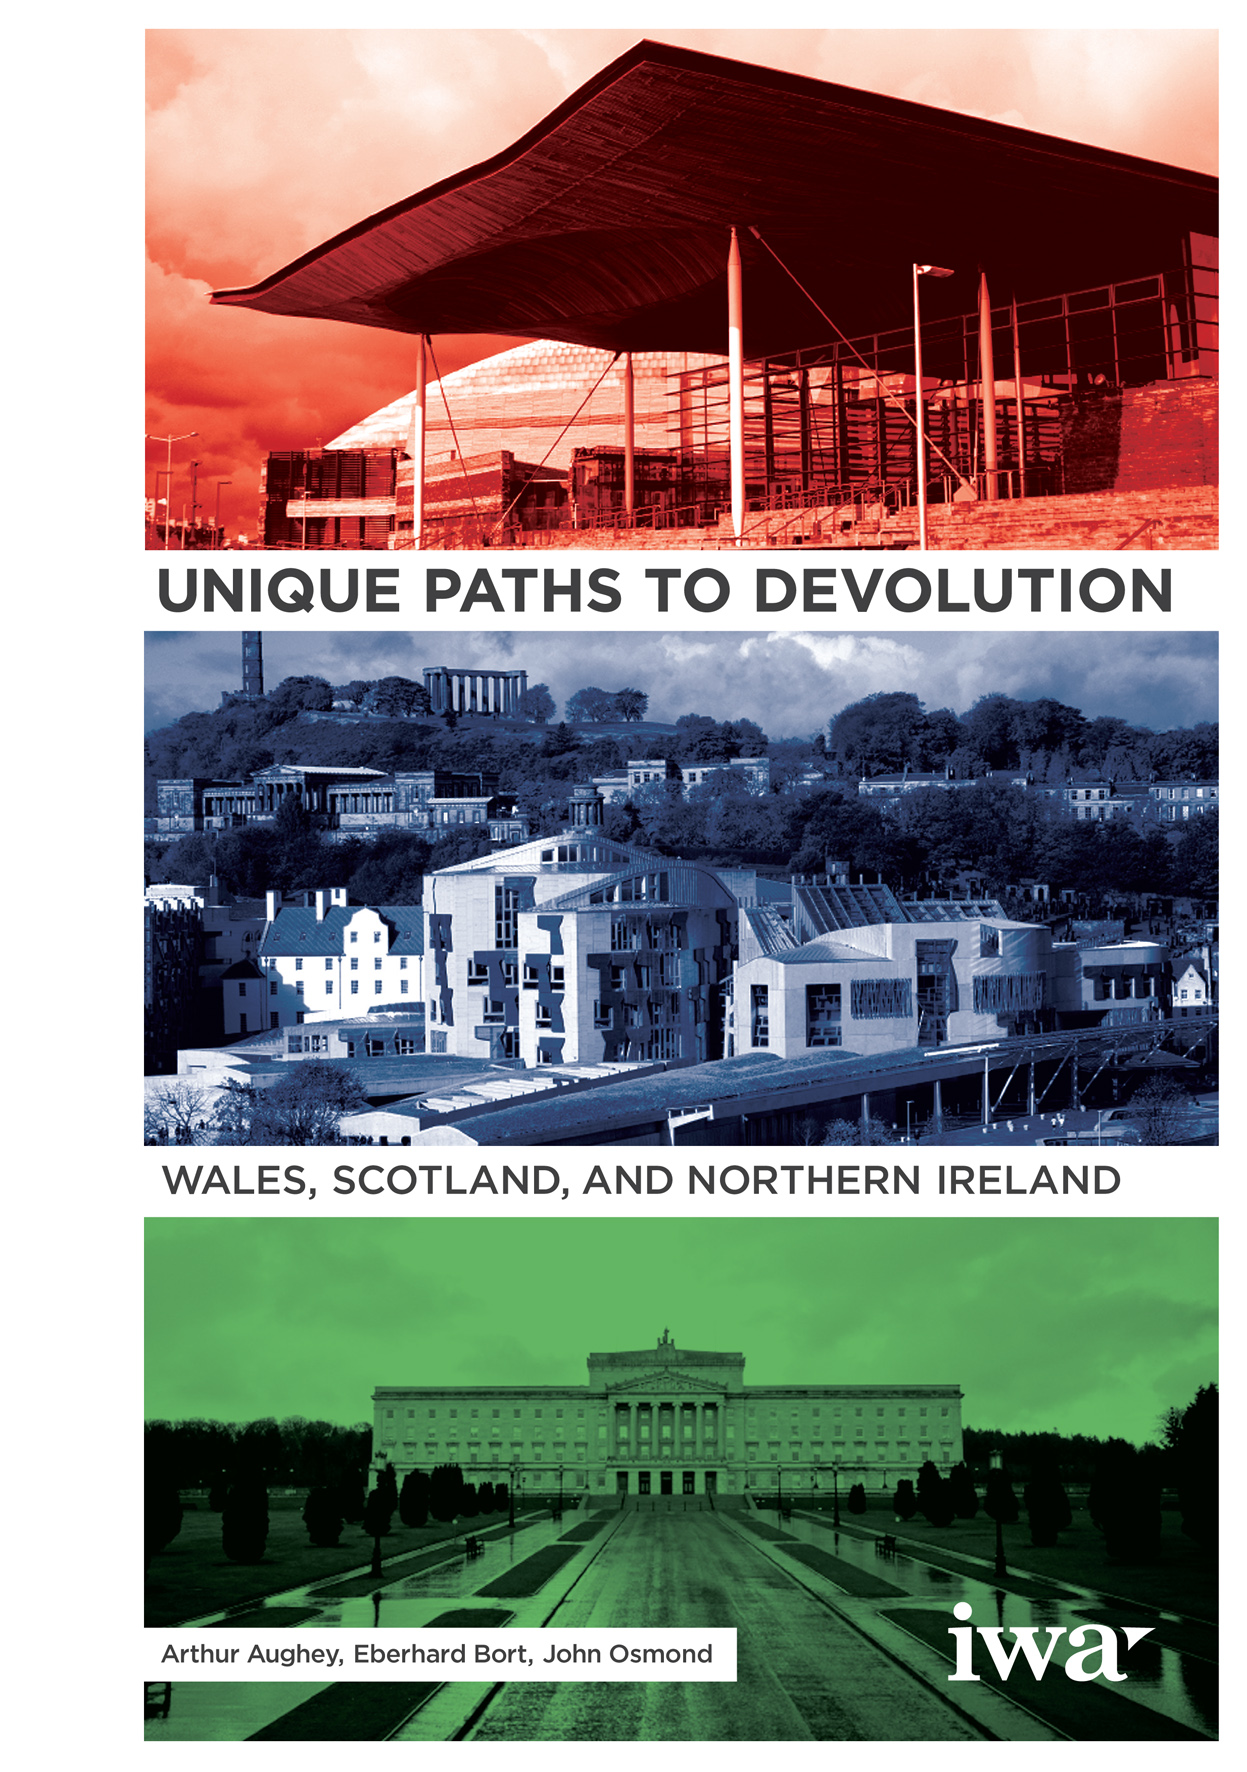 devolution in scotland essay Need writing proposed devolution for scotland essay use our paper writing services or get access to database of 212 free essays samples about proposed devolution for.